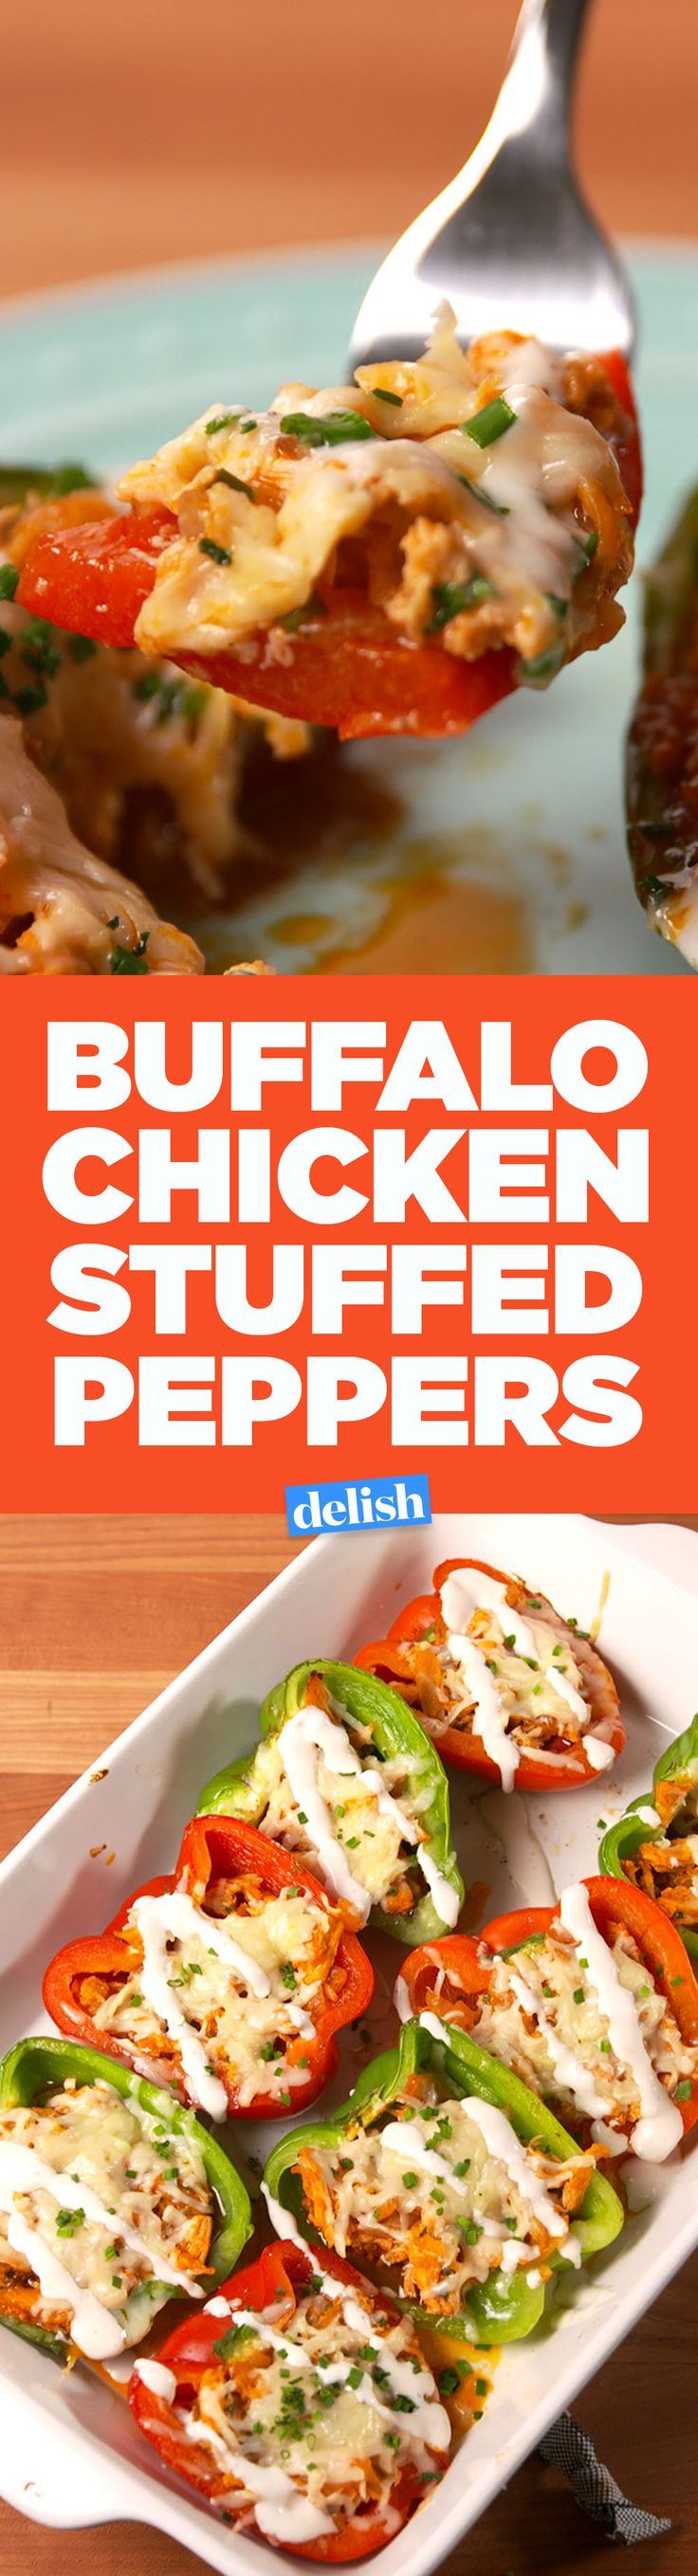 Buffalo Chicken Stuffed Peppers are your two favorite foods in one. Get the recipe on Delish.com.